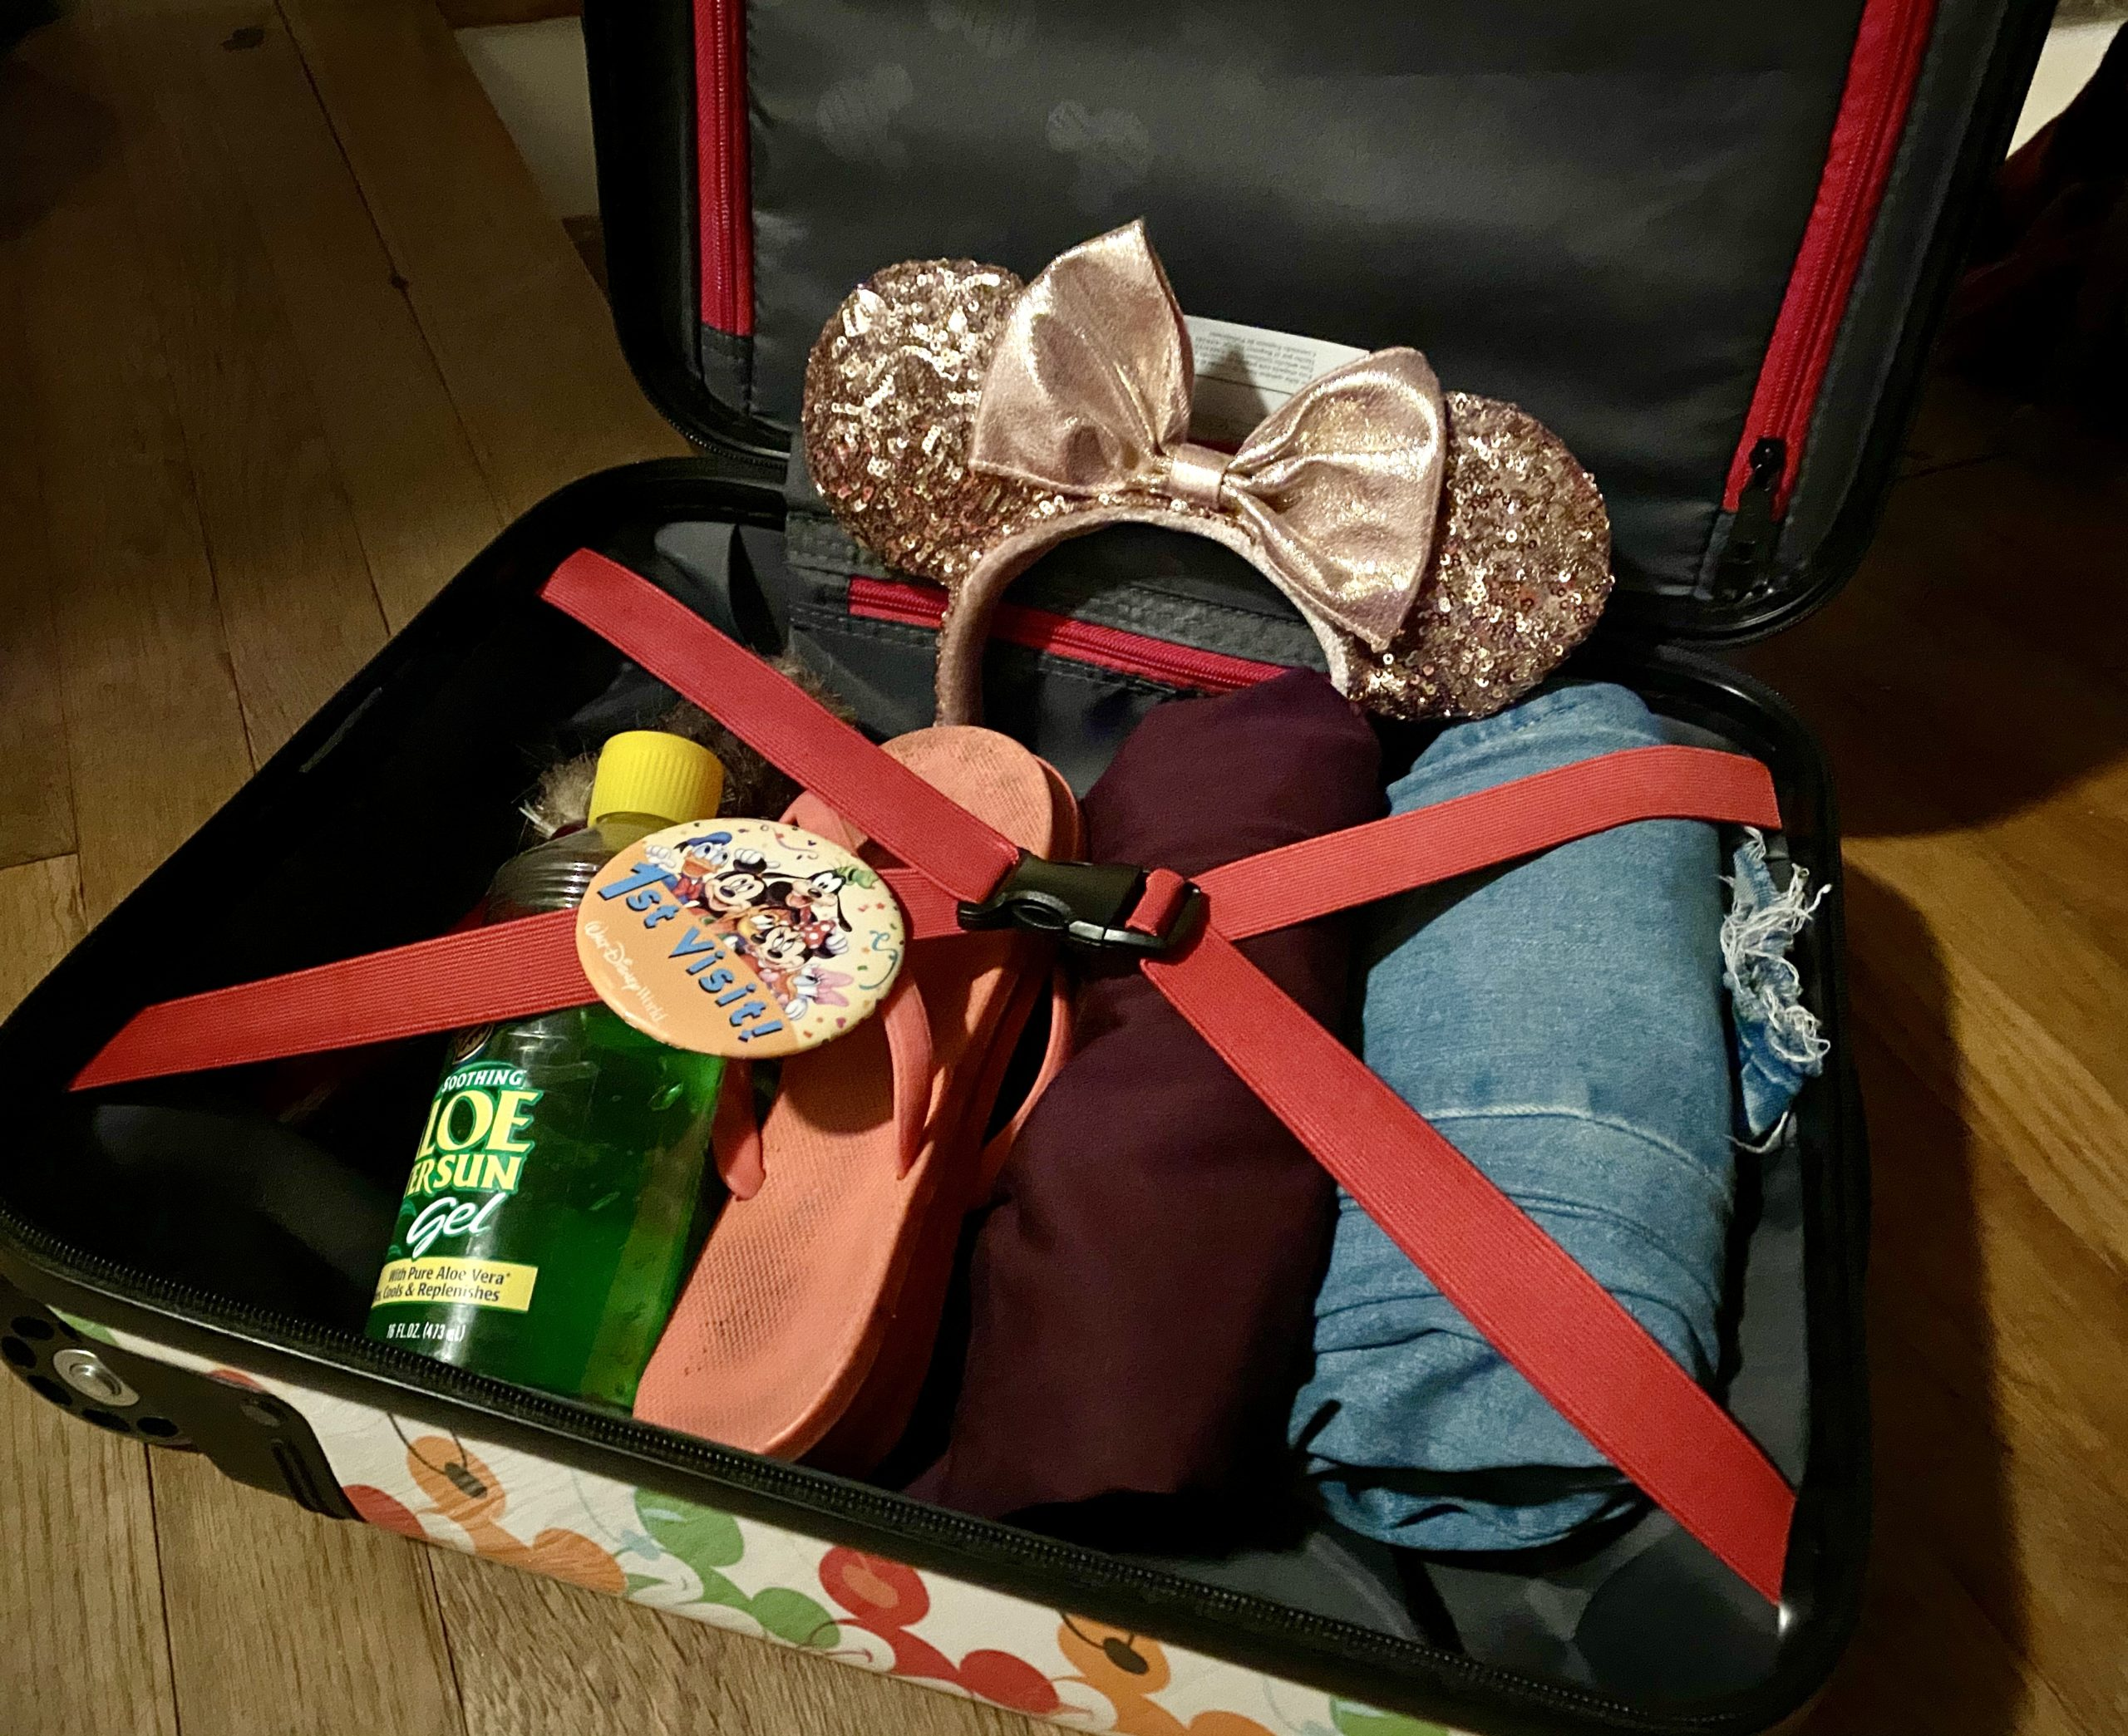 suitcase packed for a Disney World vacation - travelingmom